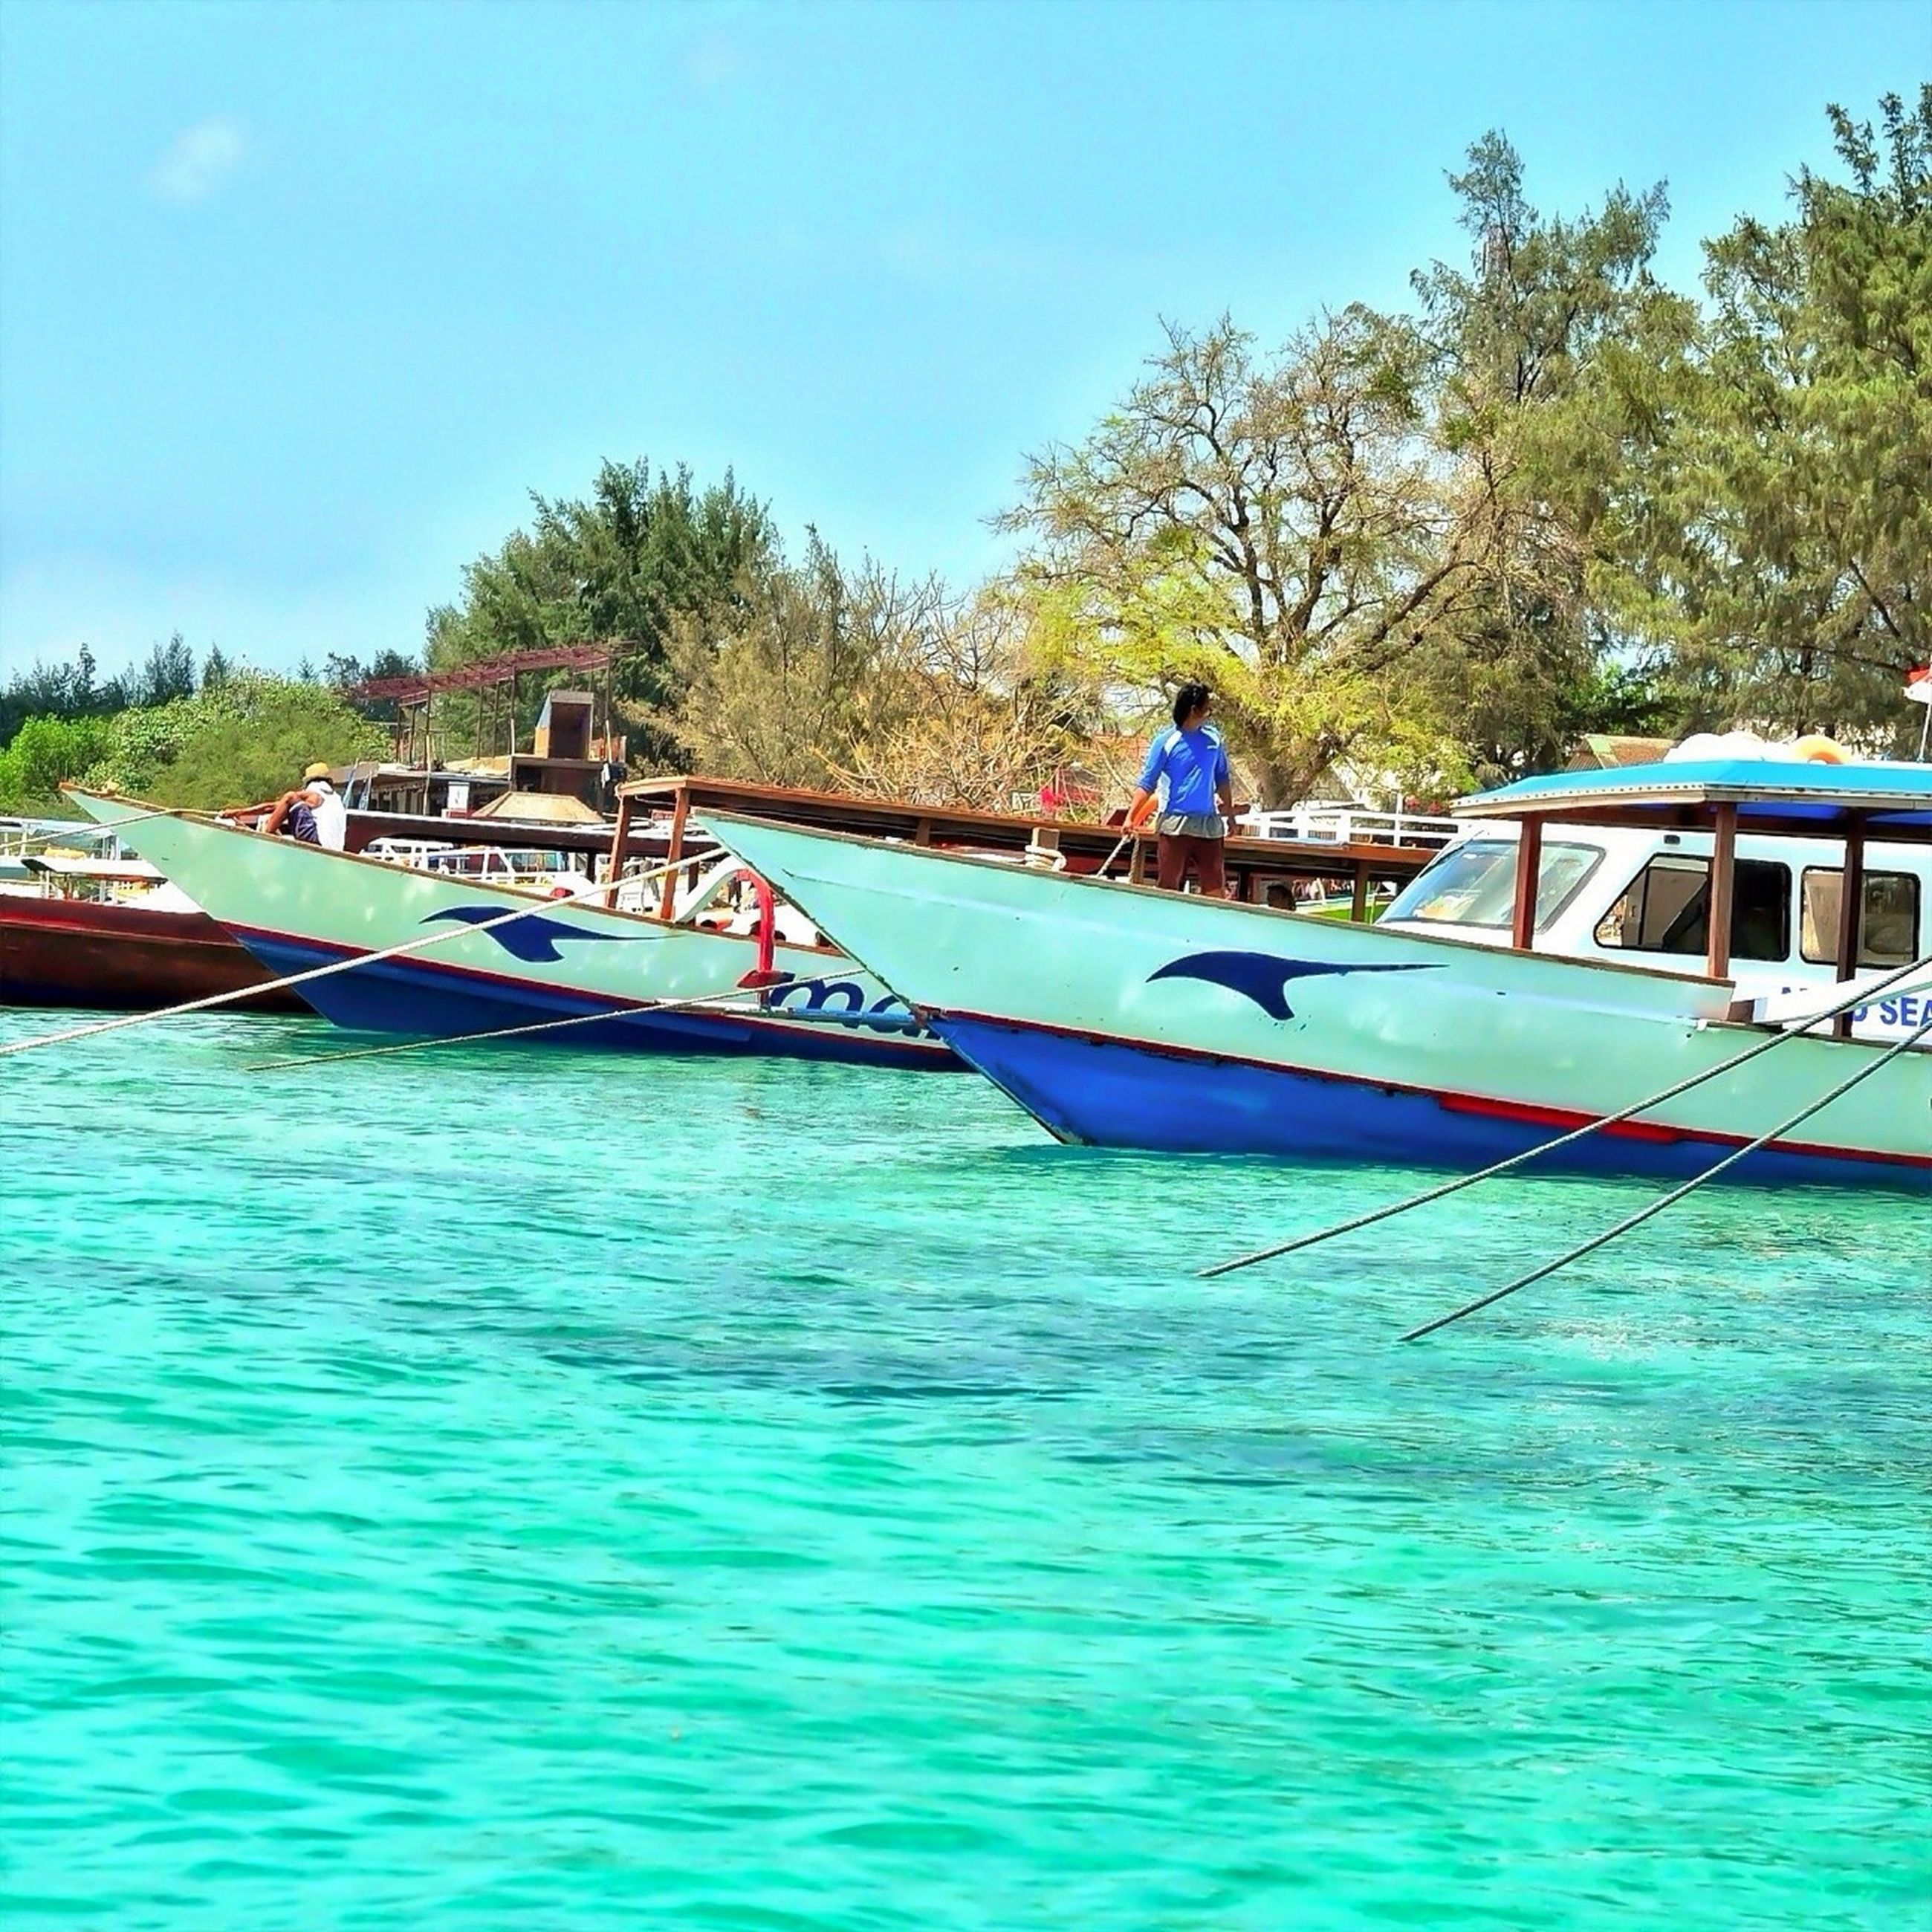 water, nautical vessel, transportation, mode of transport, tree, boat, waterfront, blue, leisure activity, lifestyles, men, travel, vacations, day, person, rippled, clear sky, nature